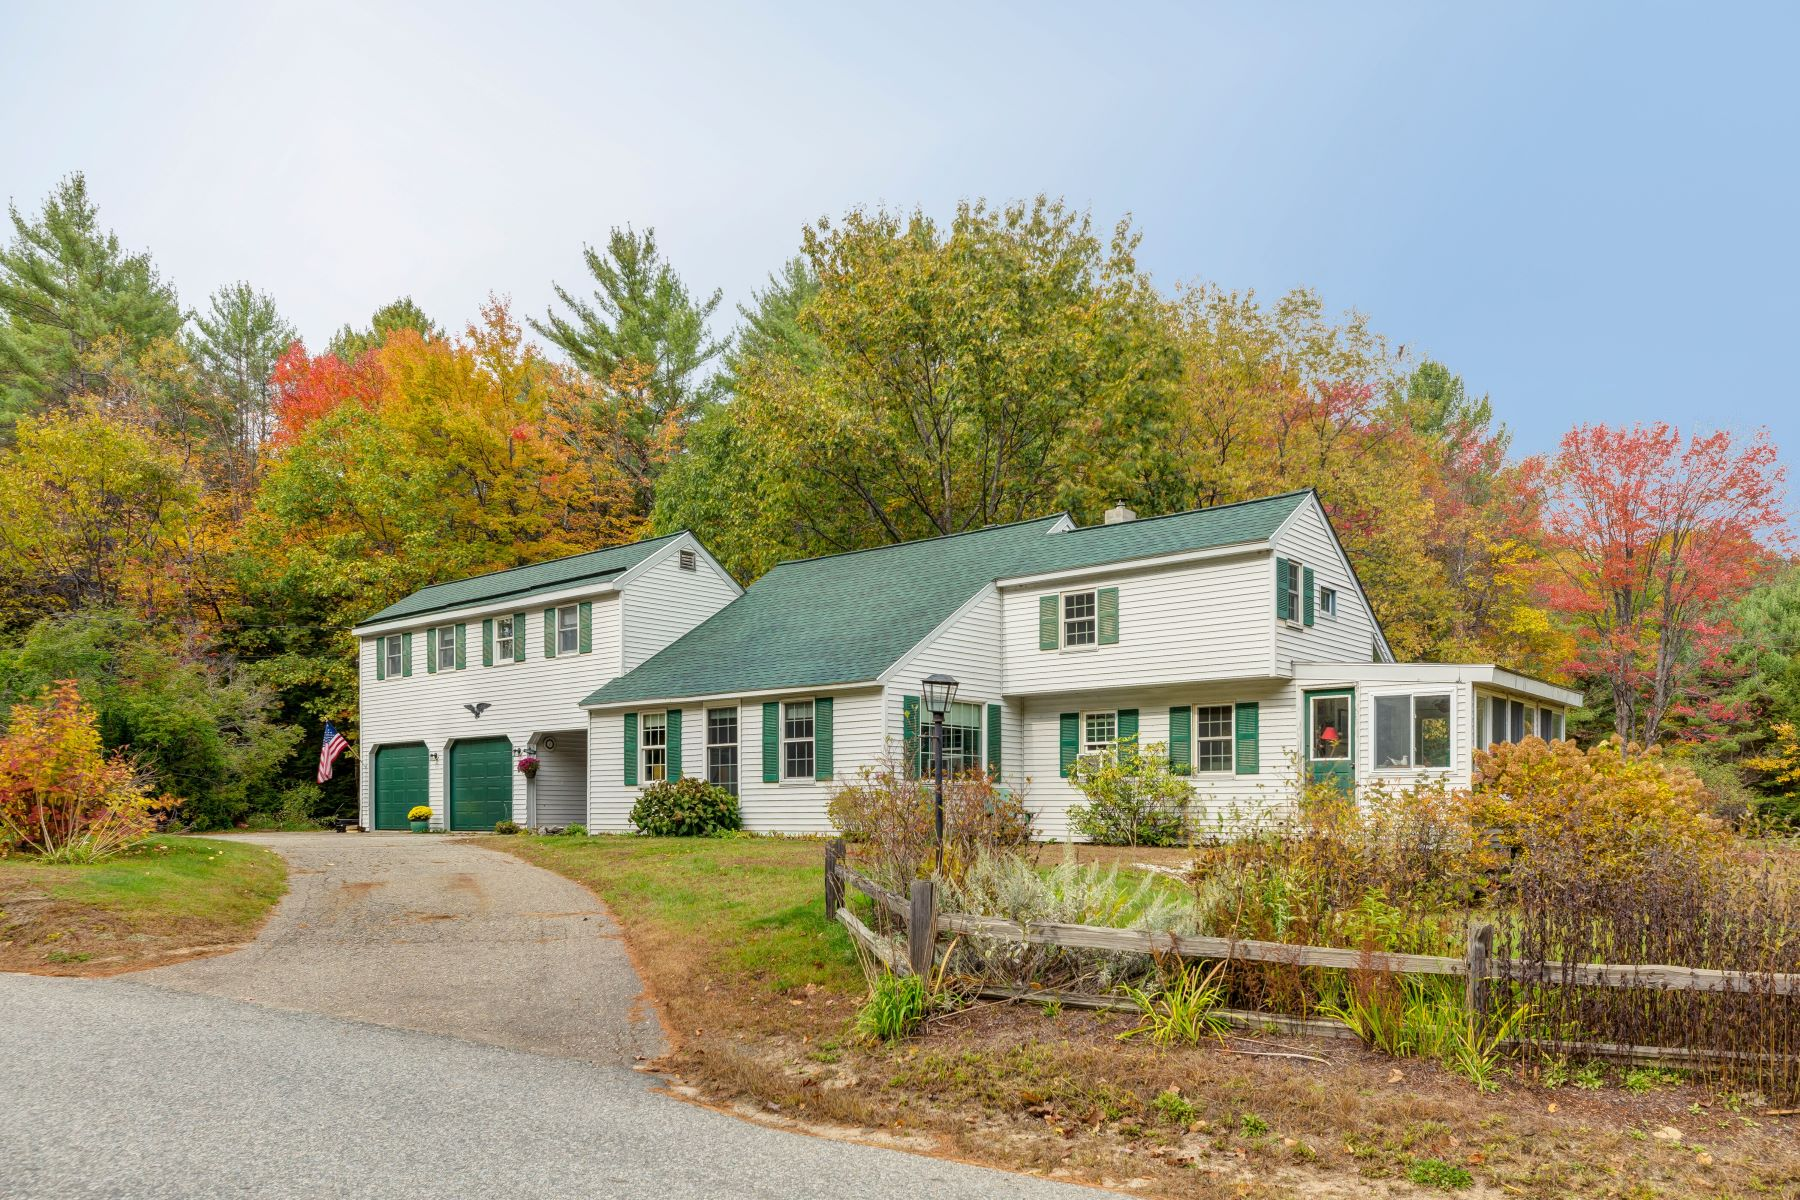 Single Family Homes for Sale at Wilmot Loop 42 Cross Hill Rd Wilmot, New Hampshire 03287 United States